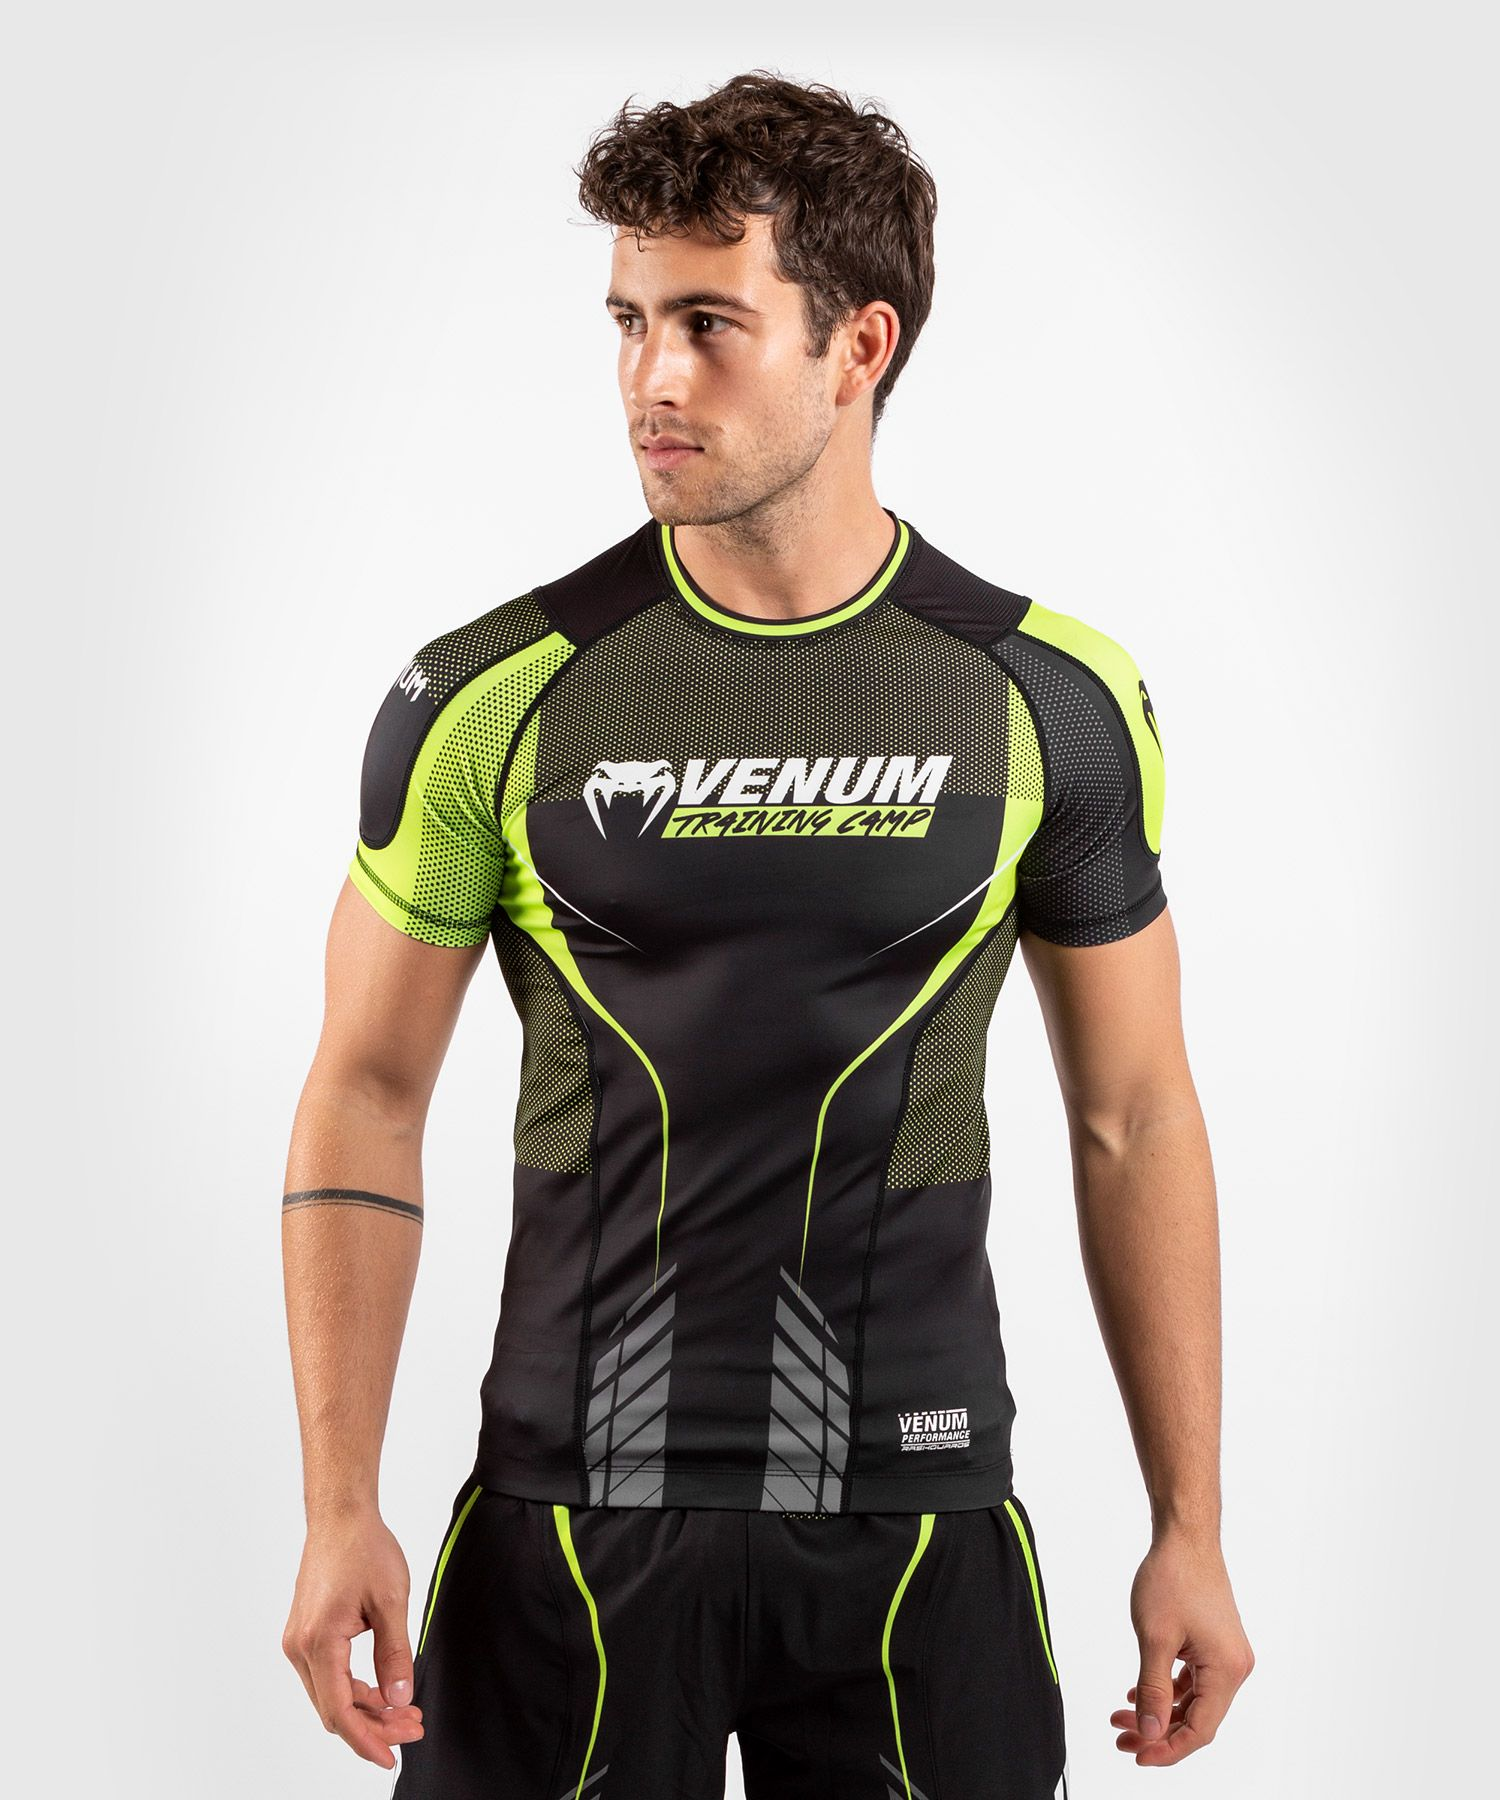 VENUM TRAINING CAMP 3.0 Rashguard, Rövid ujjú